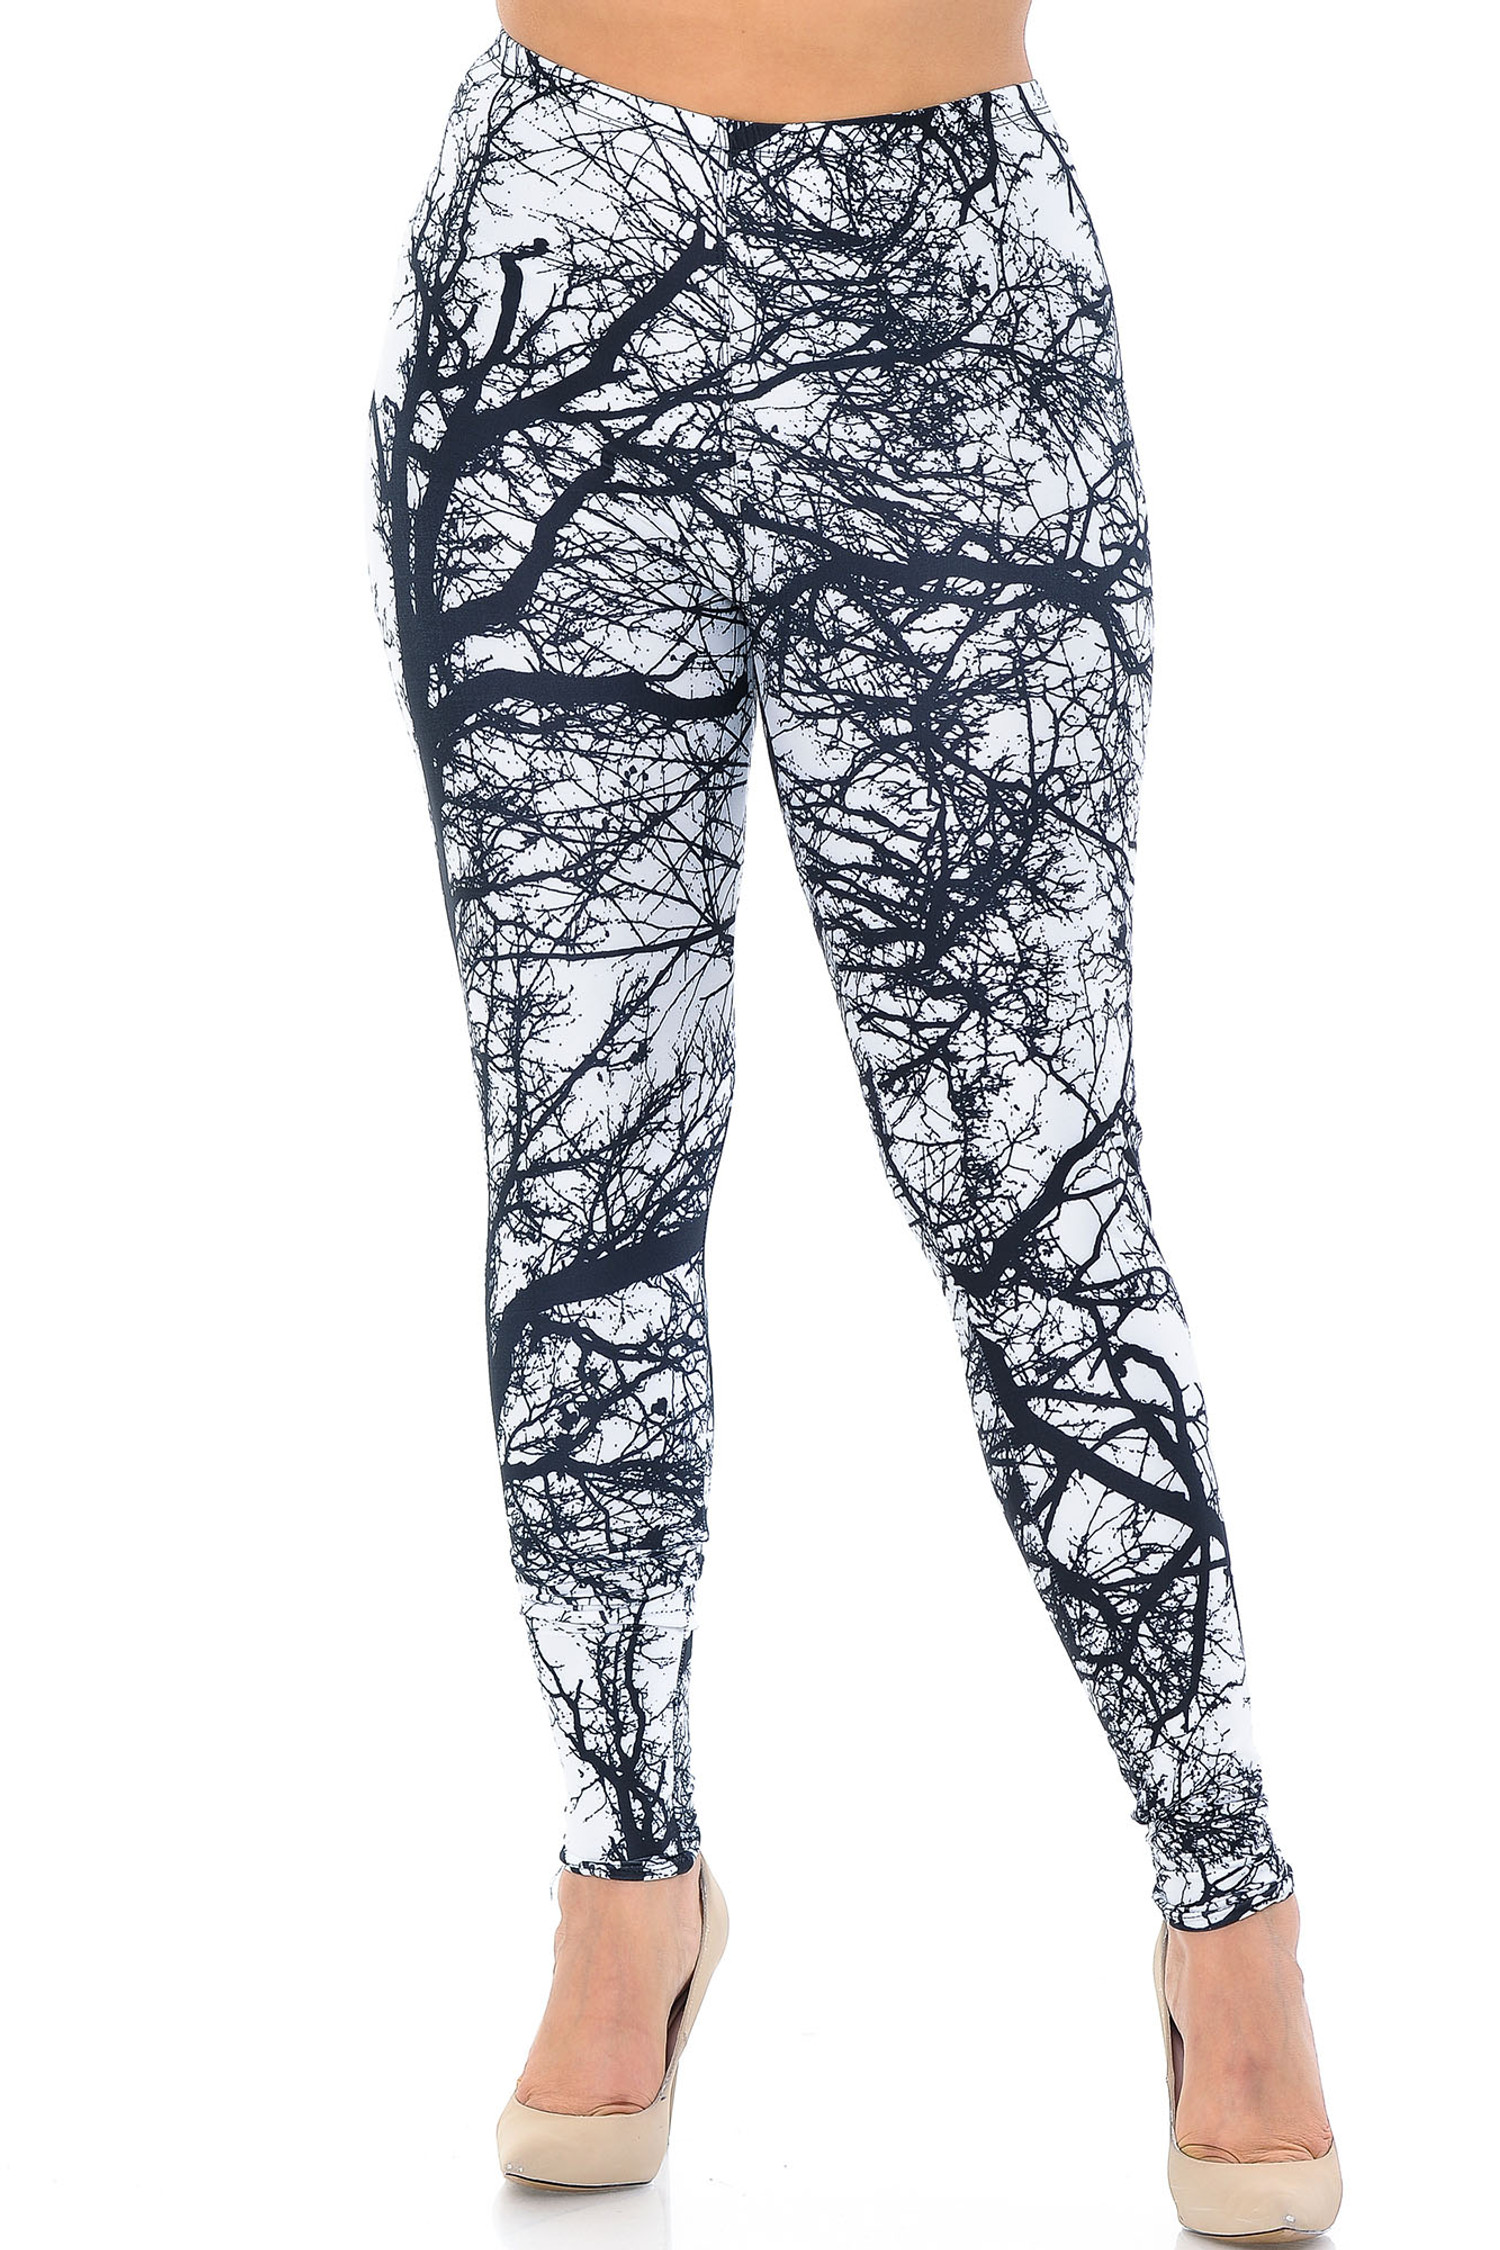 Creamy Soft Photo Negative Tree Plus Size Leggings - USA Fashion™